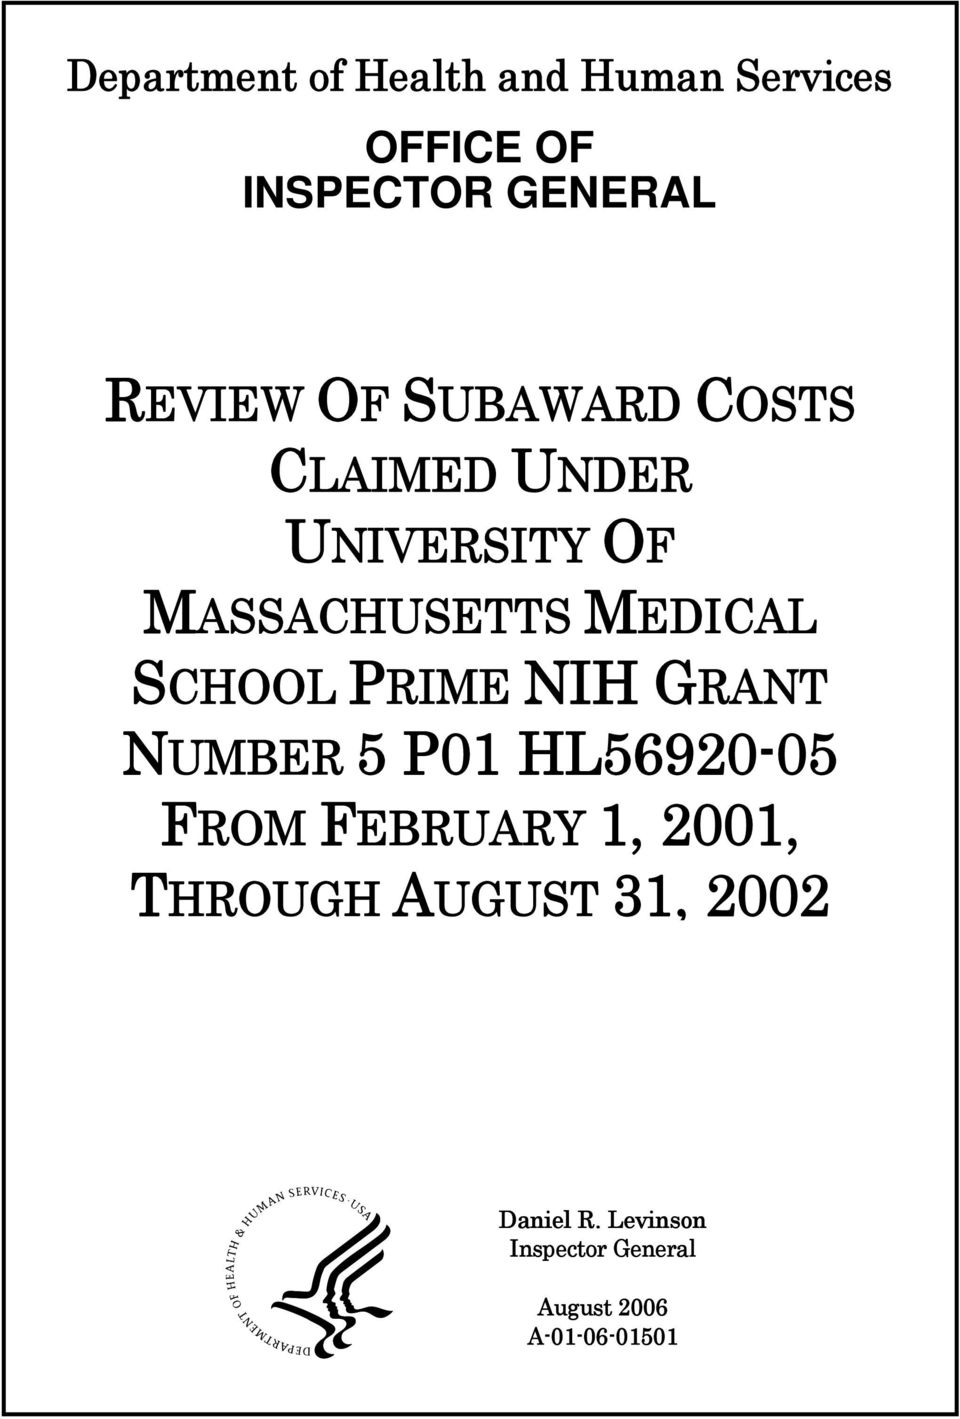 PRIME NIH GRANT NUMBER 5 P01 HL56920-05 FROM FEBRUARY 1, 2001, THROUGH